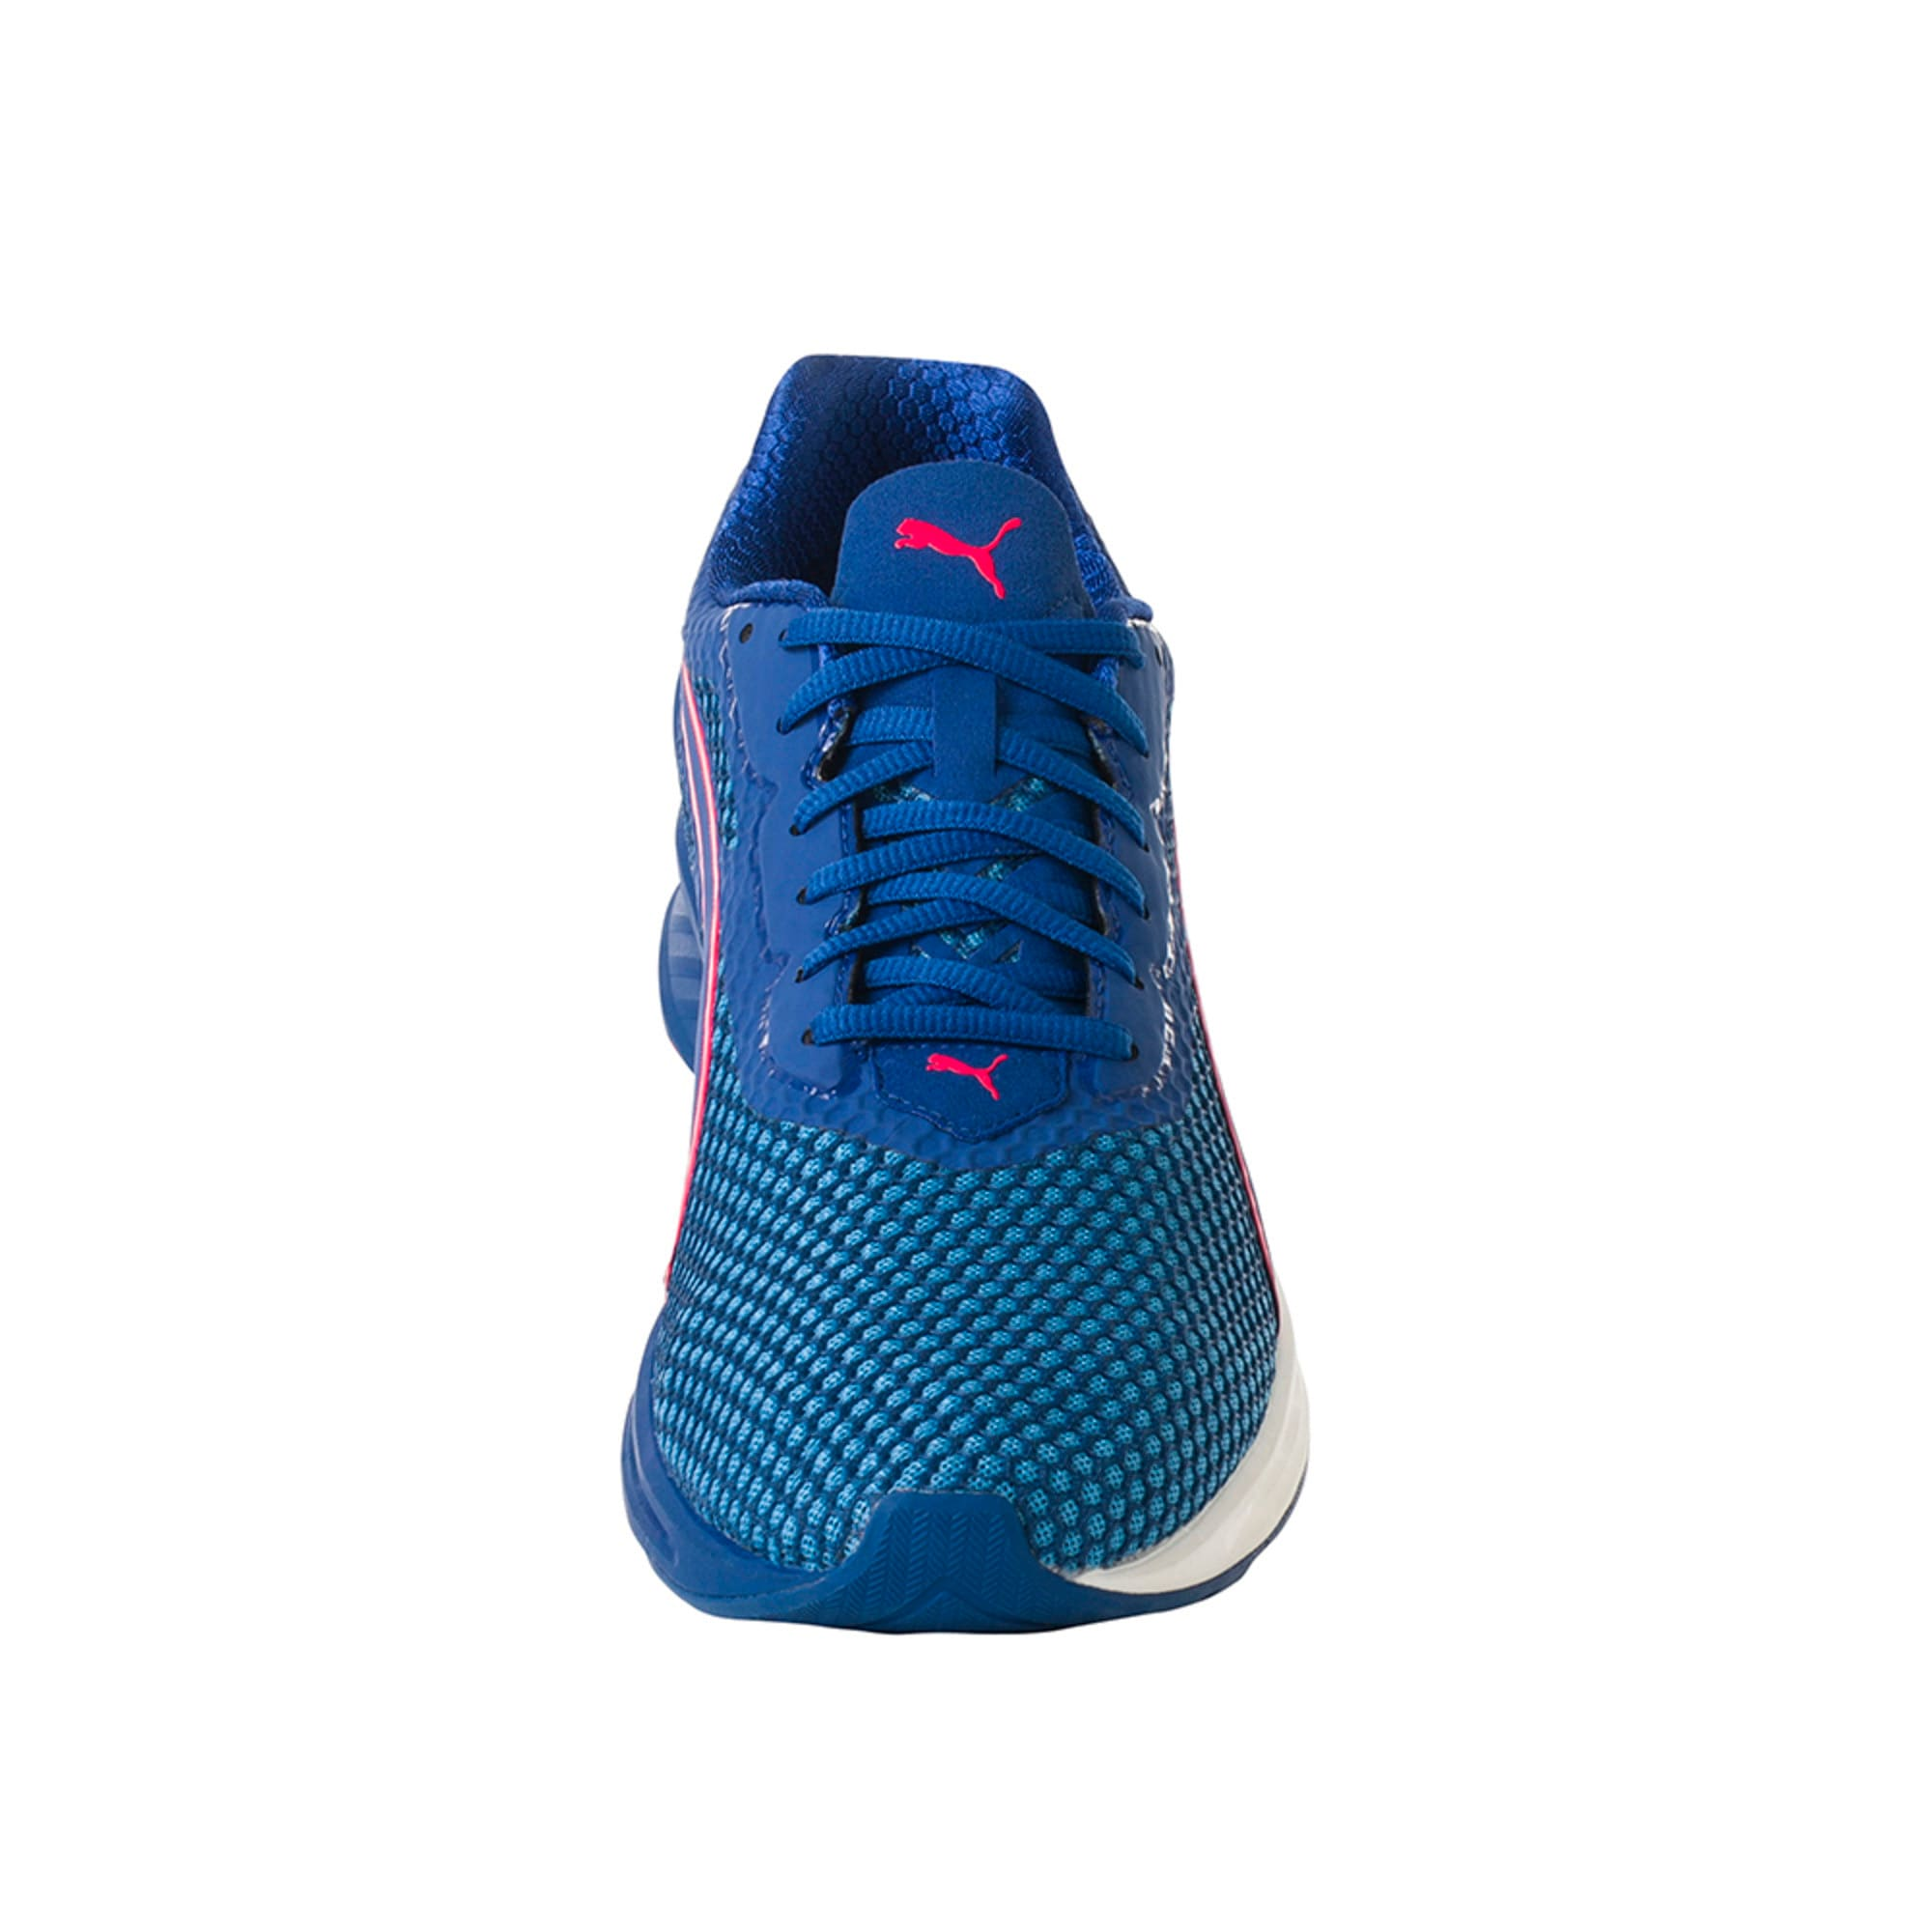 Thumbnail 2 of IGNITE 3 Men's Running Shoes, TRUEBLUE-BLUEDANUBE-Plasma, medium-IND